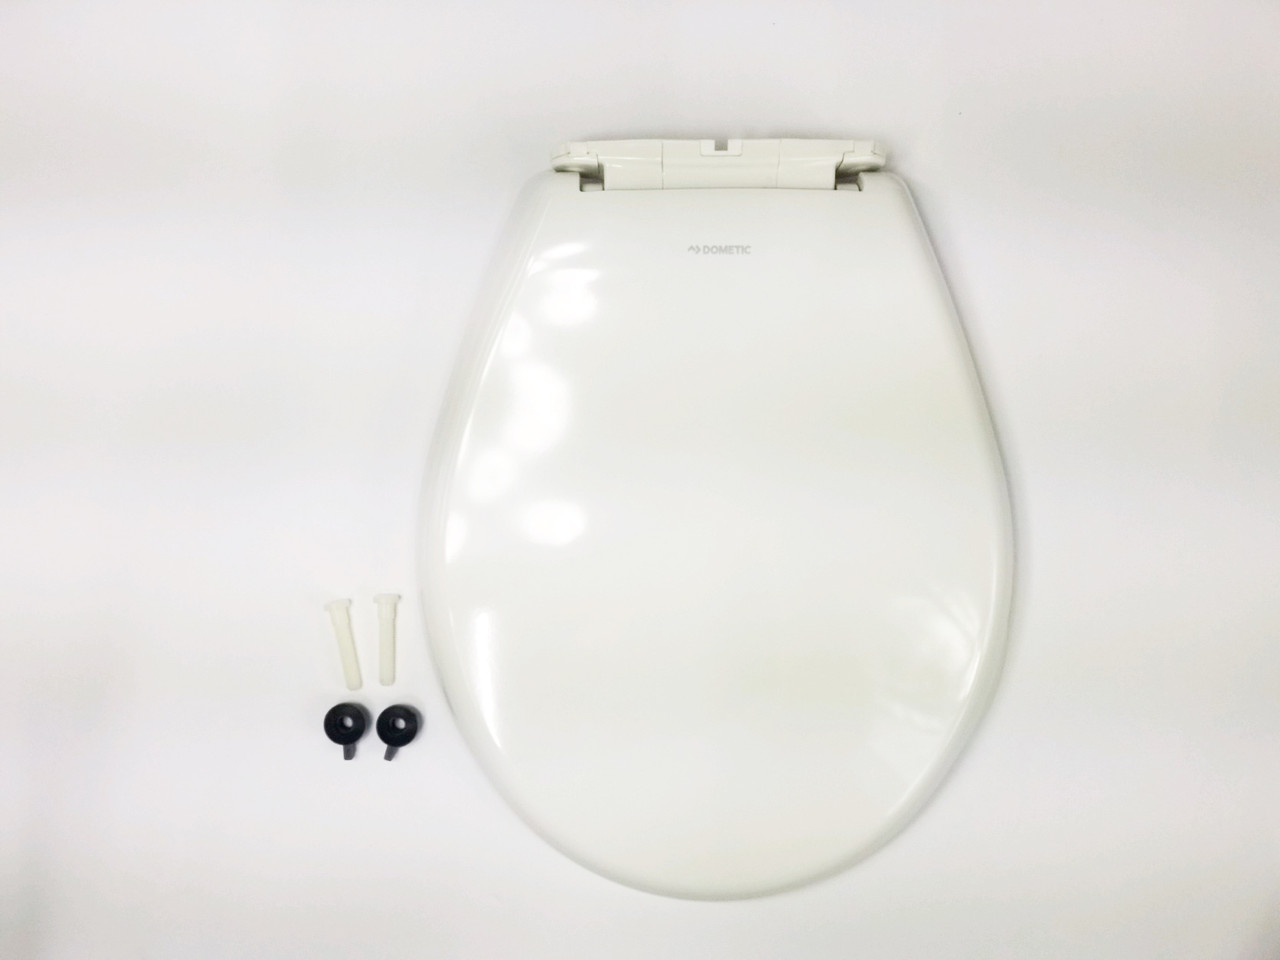 Slow-close seat and cover for 4800 series toilets